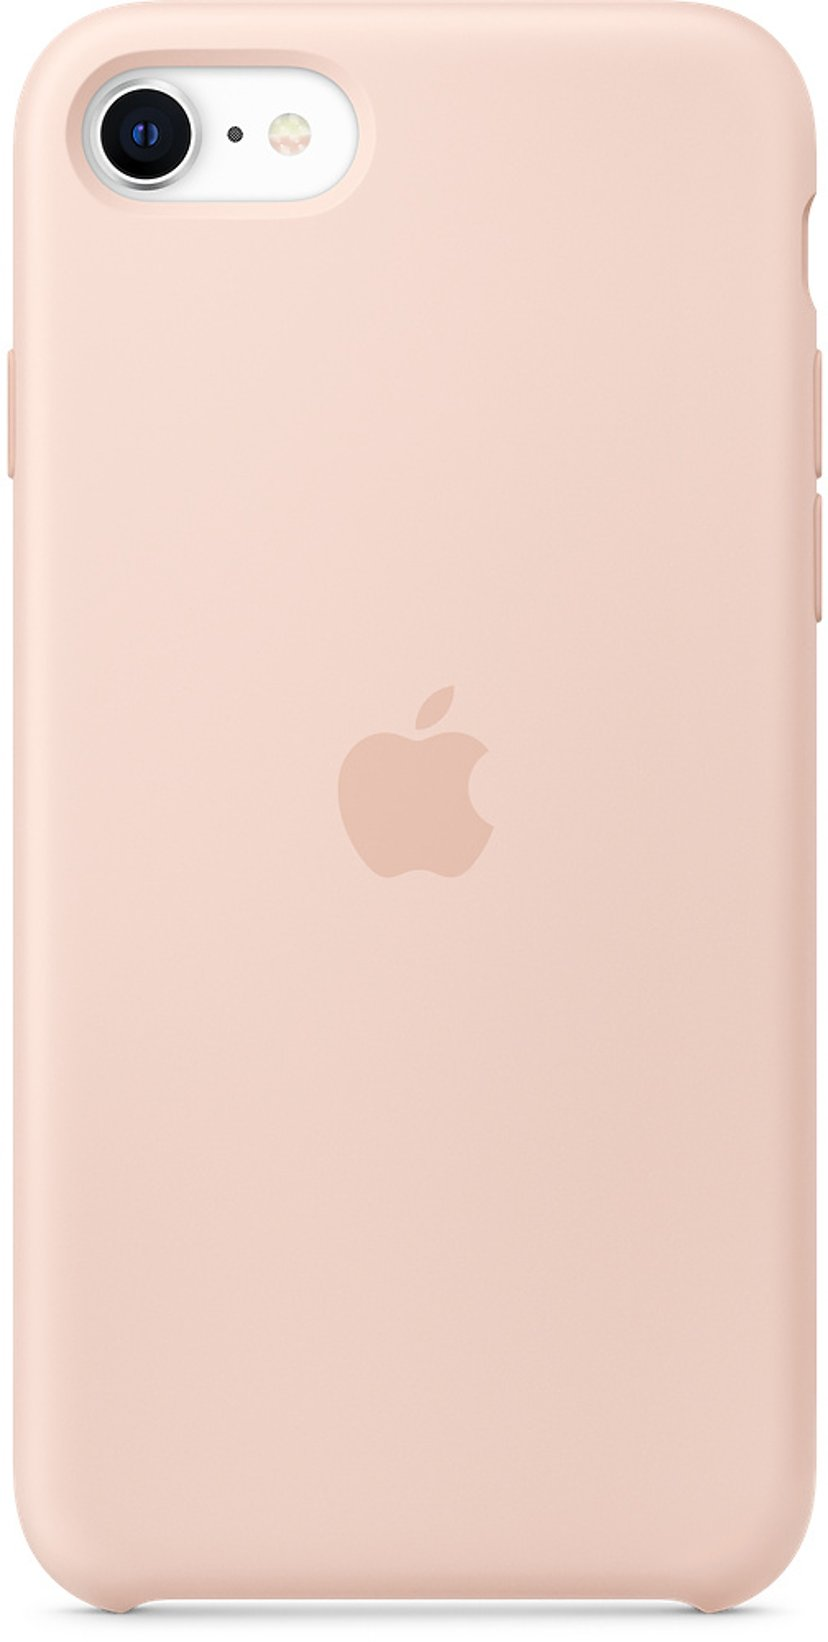 Apple Baksidedeksel for mobiltelefon iPhone 7, iPhone 8, iPhone SE (2020) Rosa sand